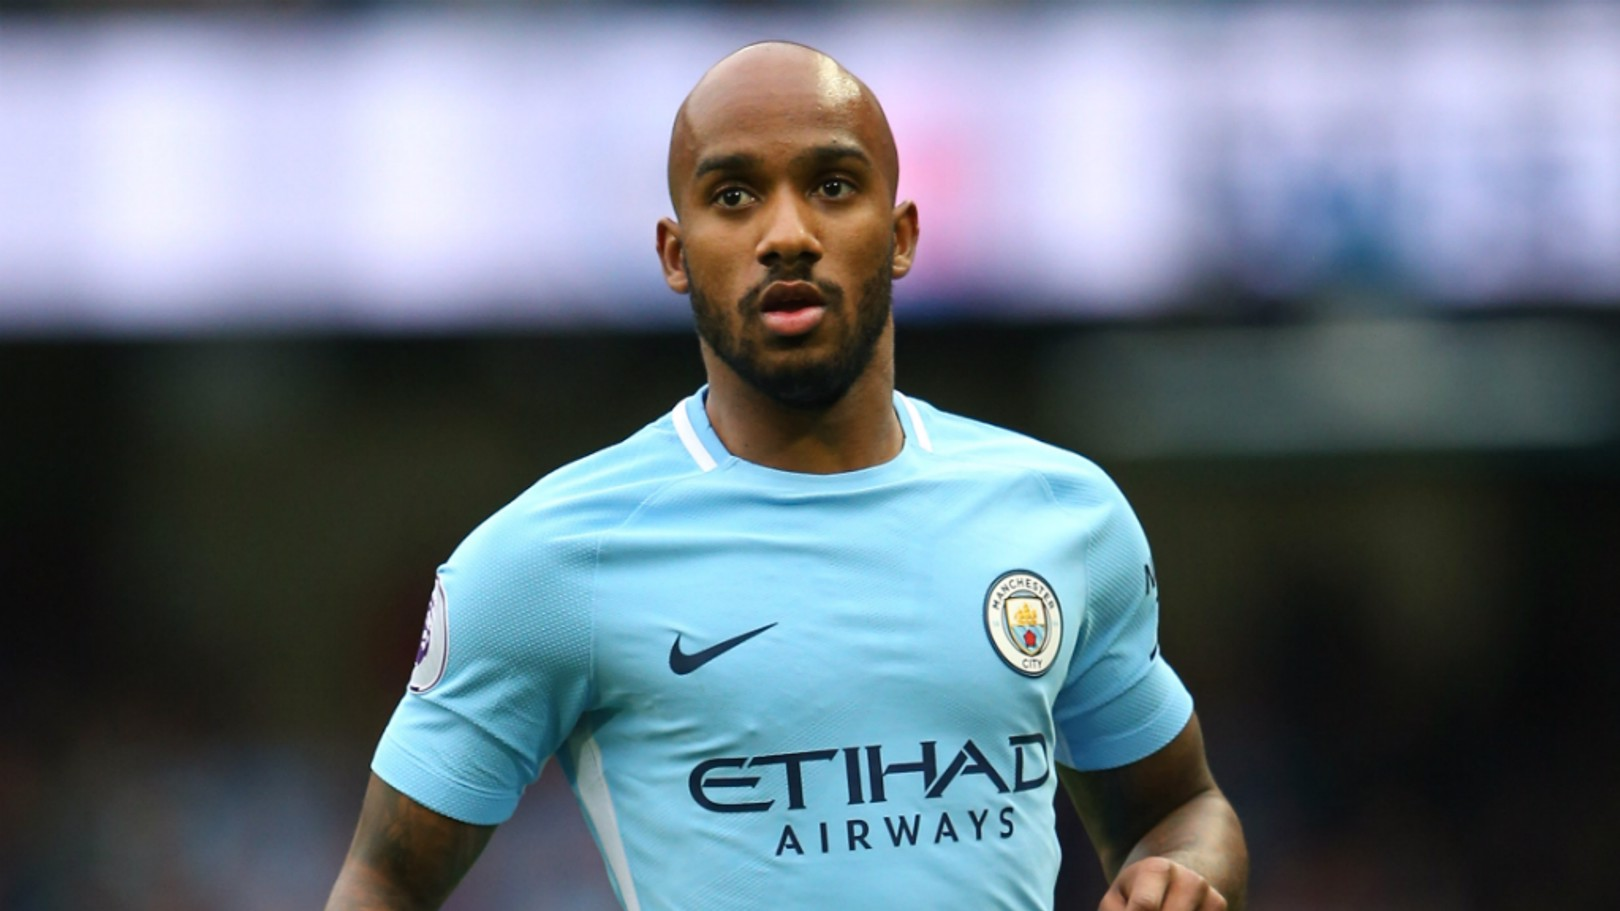 FABIAN DELPH: The midfielder has returned to Manchester and will be assessed by the Club's medical staff